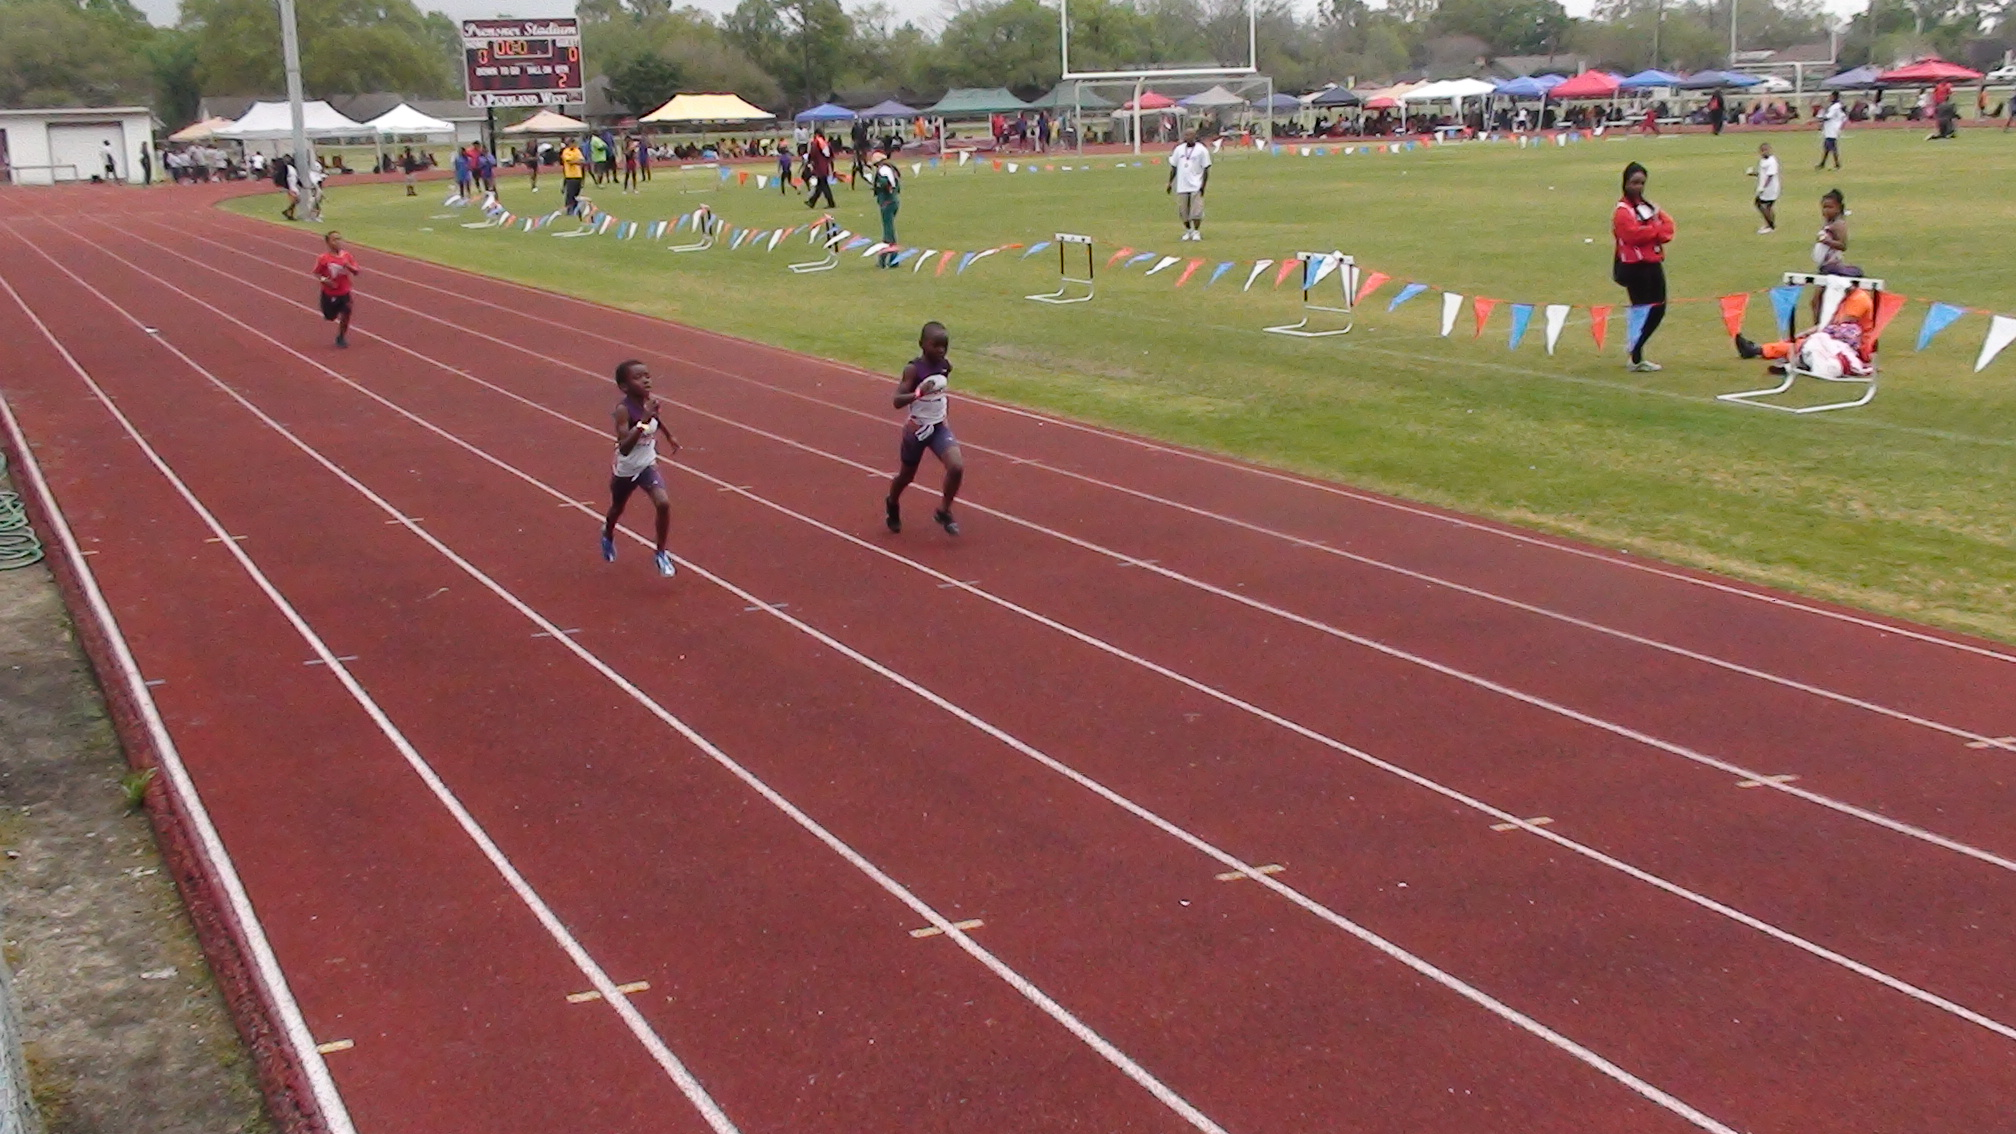 Todd and Demarien running the 200m